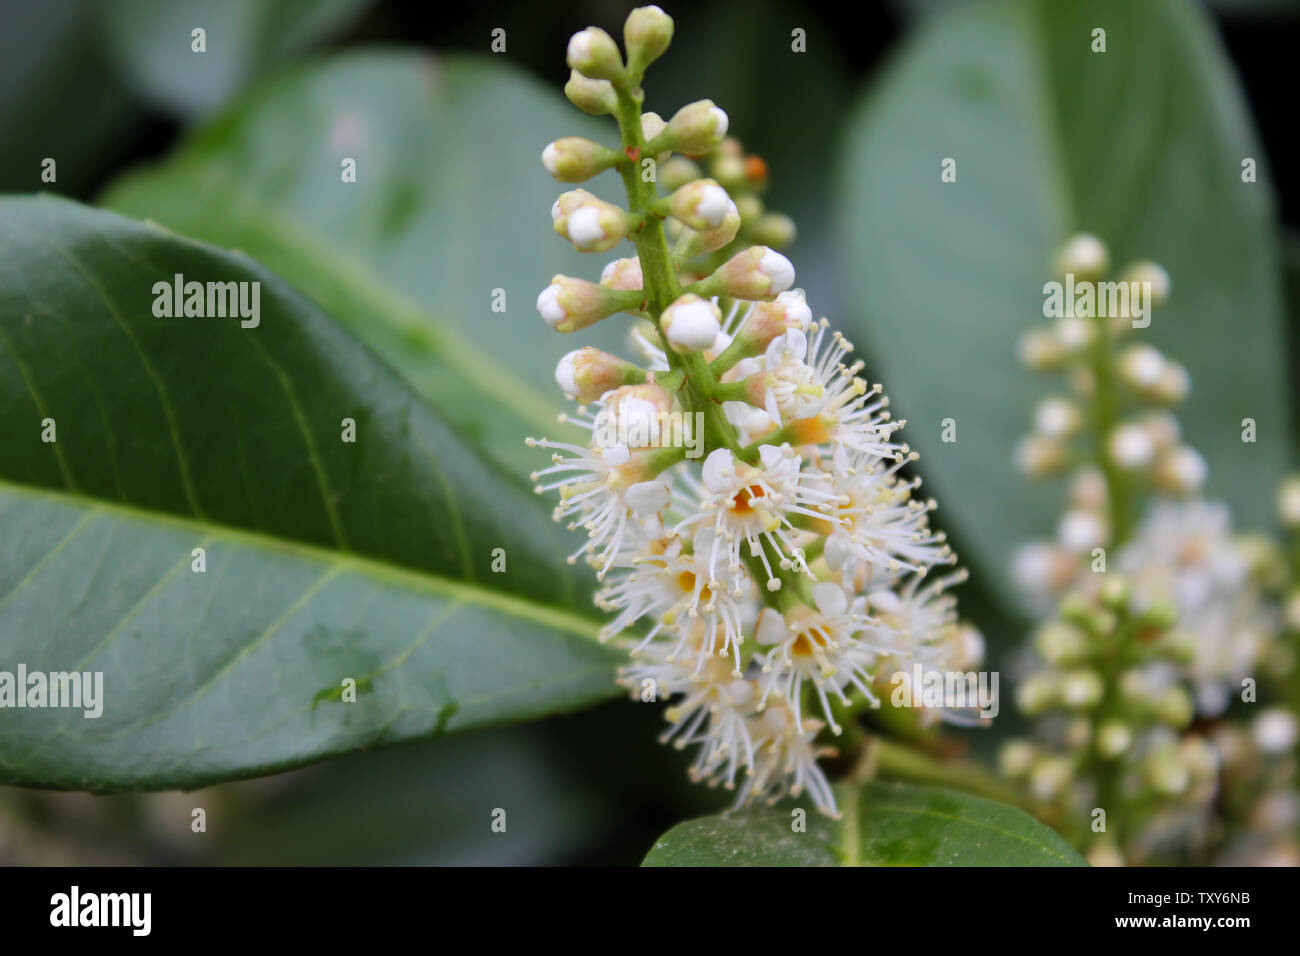 Close-up view of white blooming Prunus laurocerasus shrub, also known as cherry laurel, common laurel and English laurel - Stock Image